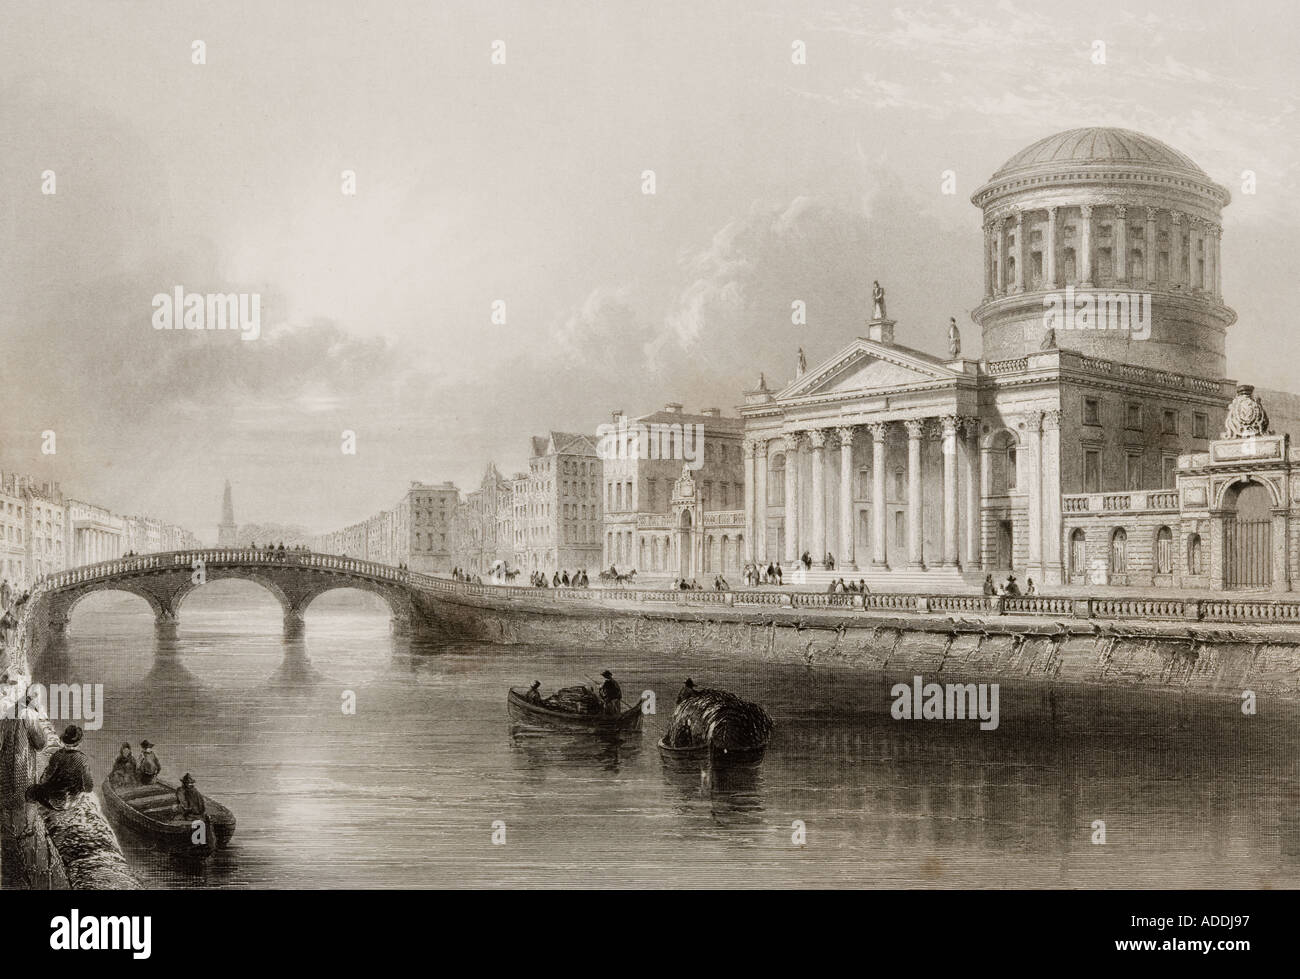 The Four Courts Dublin Ireland - Stock Image